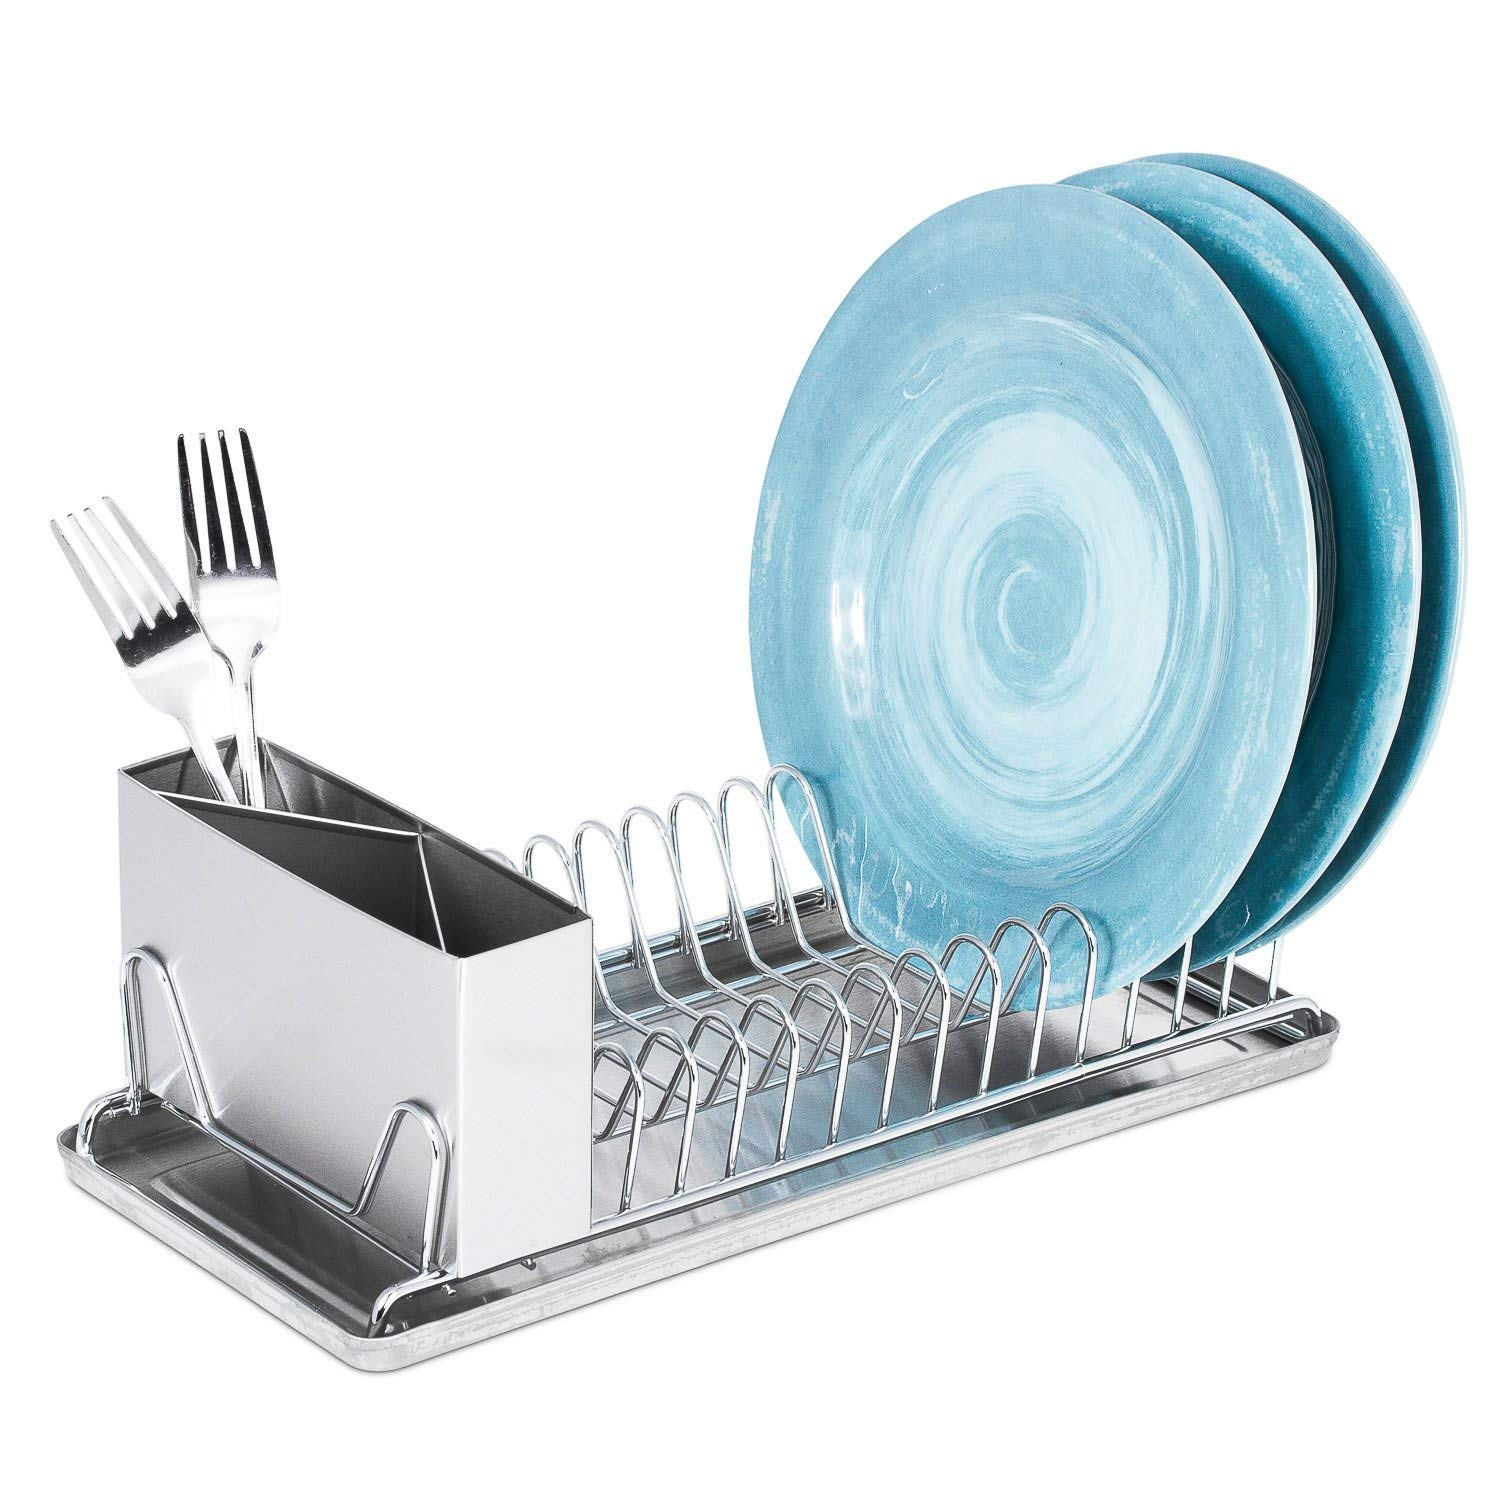 Merveilleux Get Quotations · Dish Drying Rack With Drain Board U2013 Compact With Stainless  Steel Utensil Holder And Dish Rack